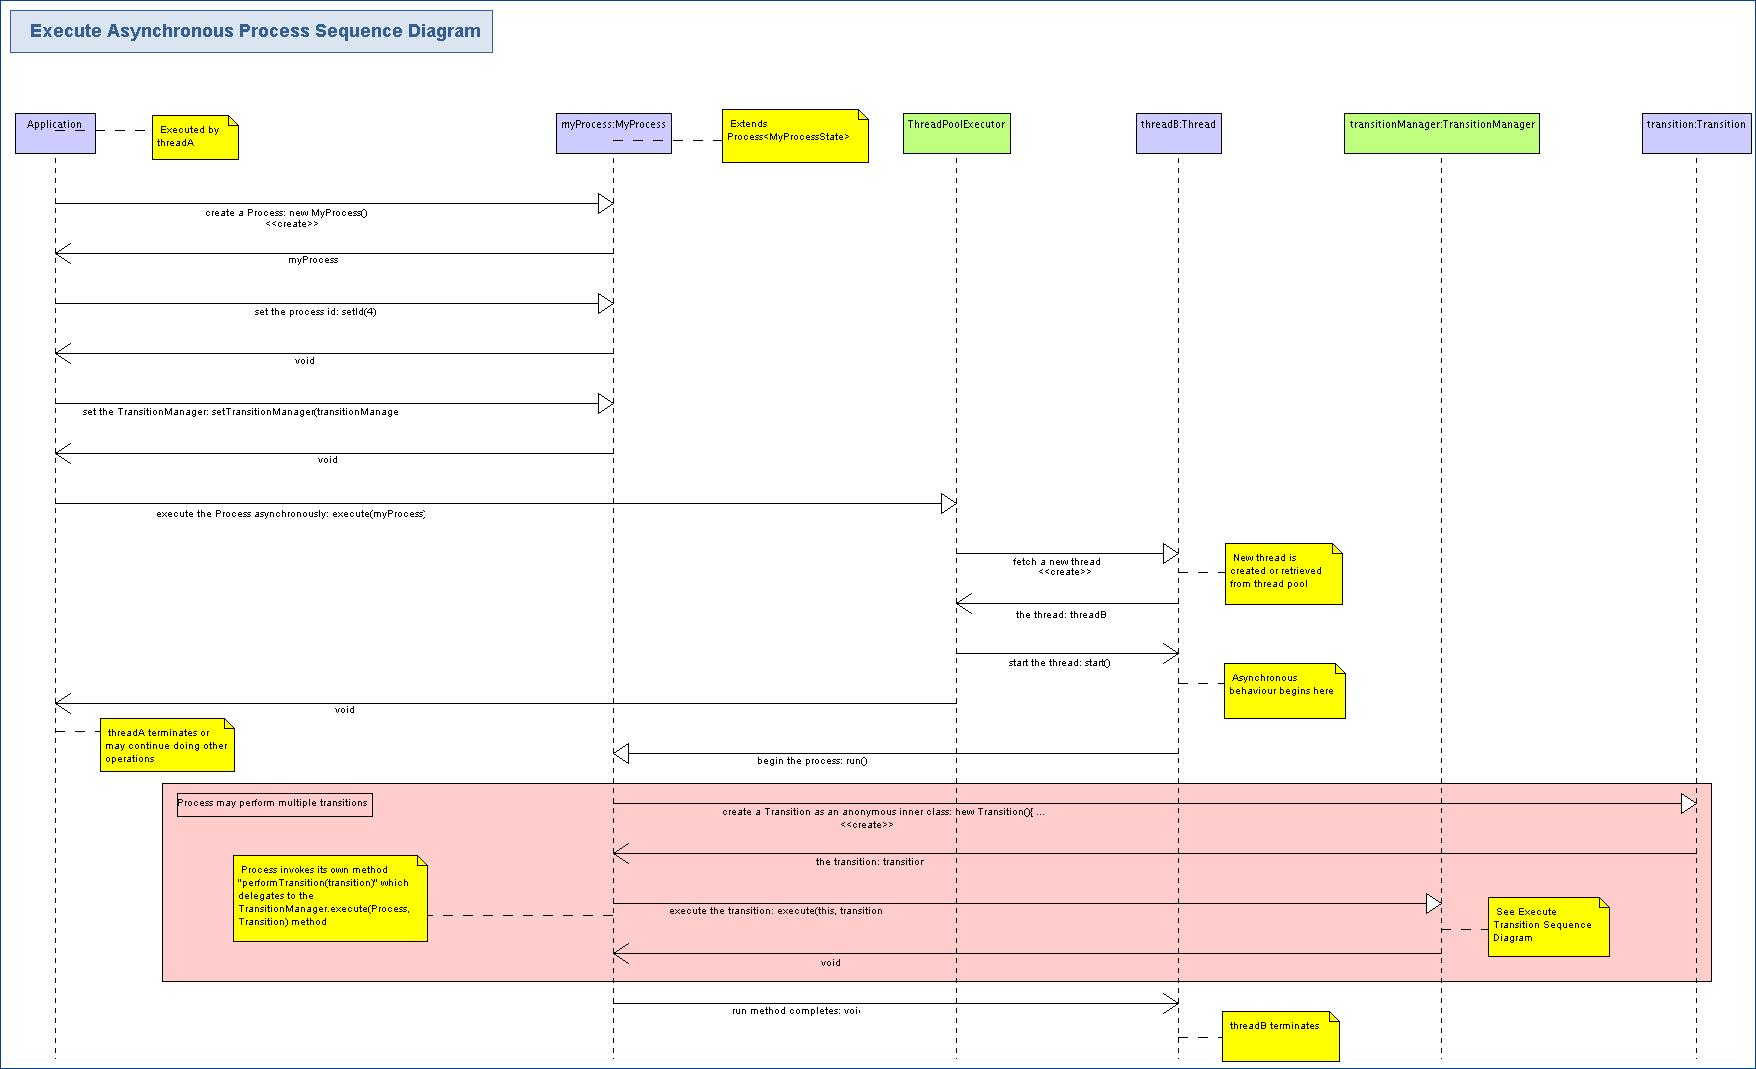 ... >Execute Asynchronous Process Sequence Diagram · > ...